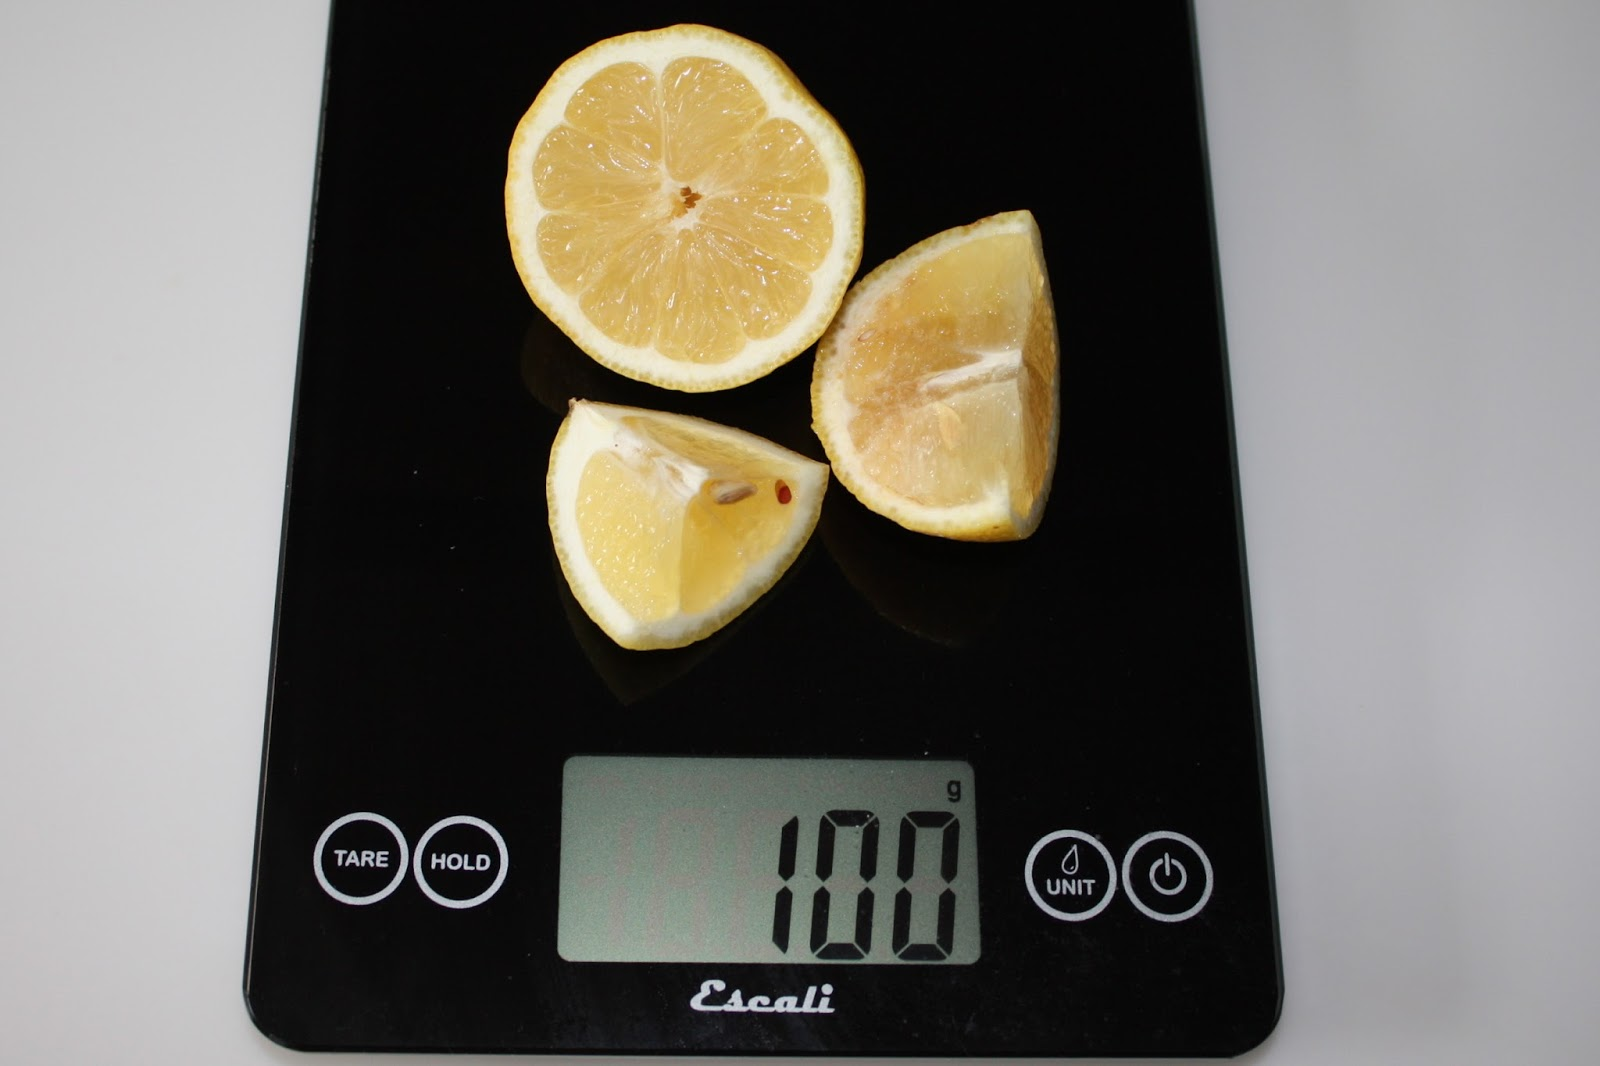 100 grams of lemon, raw with peel and seeds intact